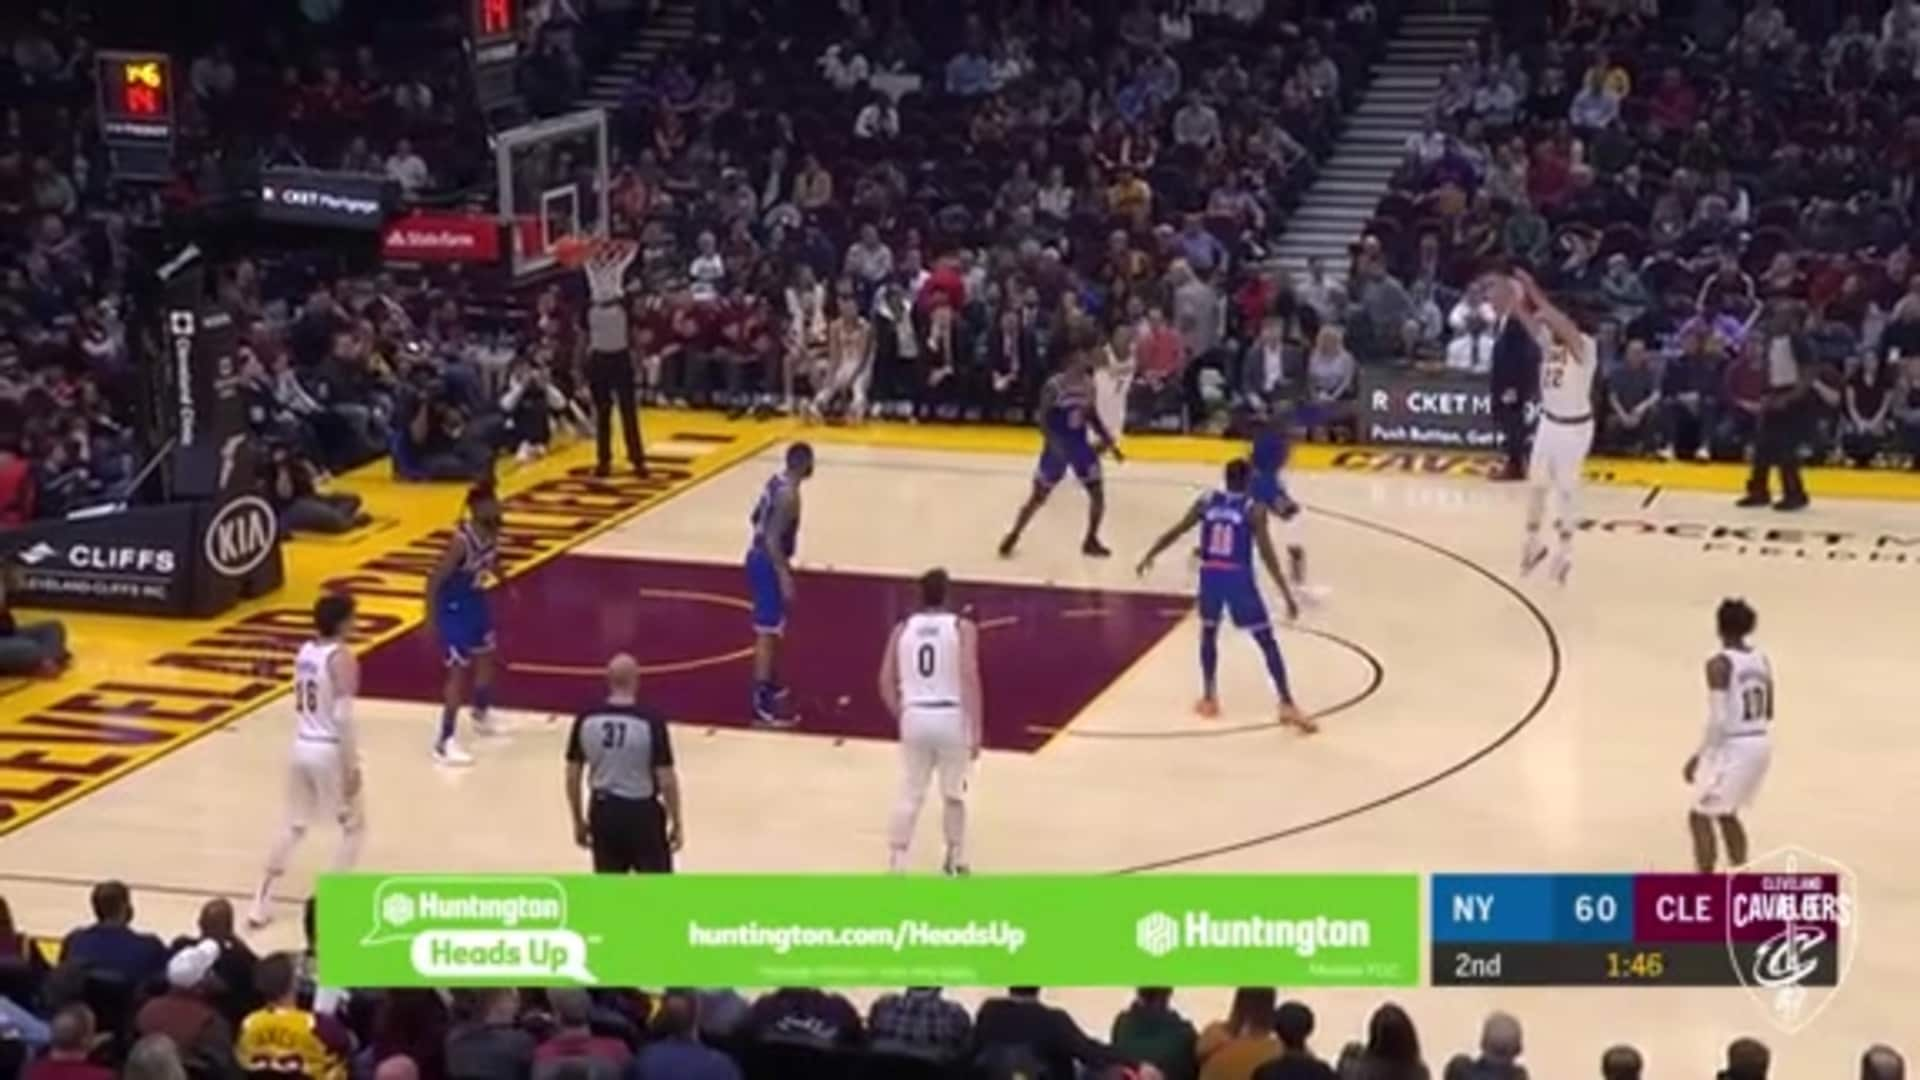 Sexton's Behind-the-Back Pass to Nance for Three